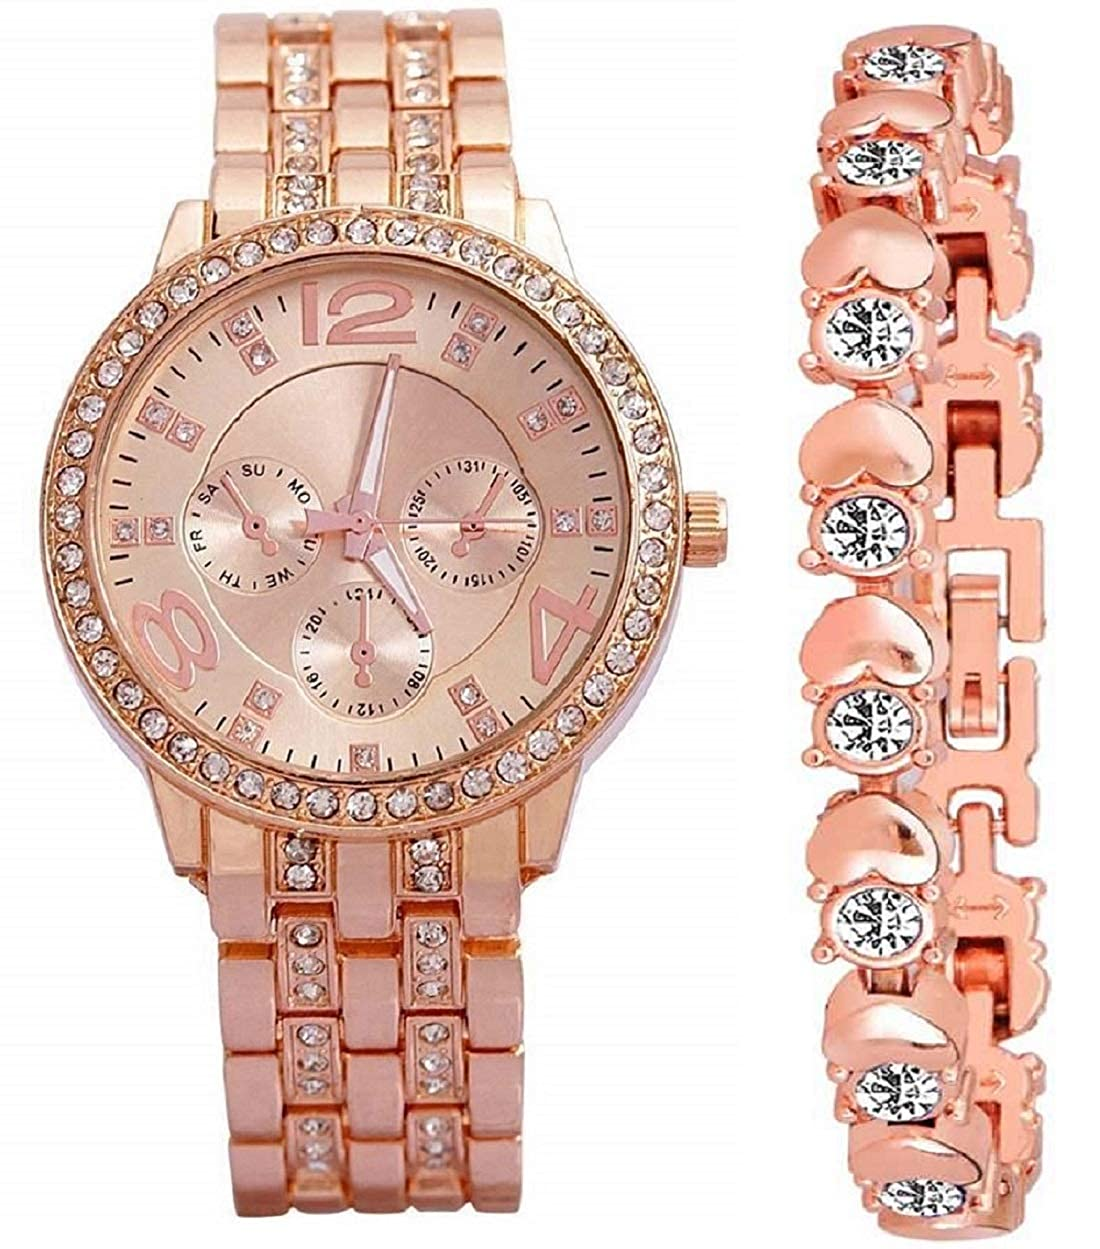 Diamond Studded Stylish Analogue Watch with Rose Gold Dot Bracelet